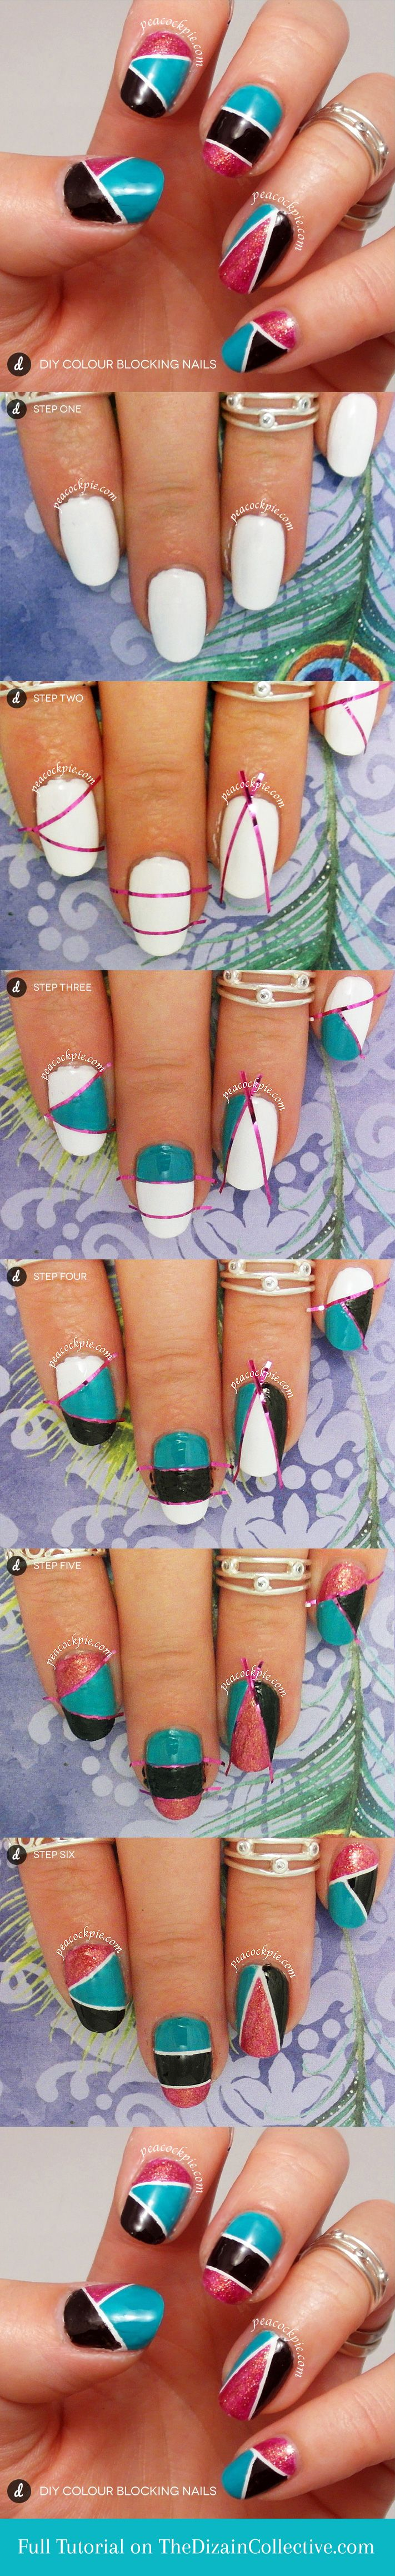 DIY Nail Art tutorial for Colour Blocking on your nails